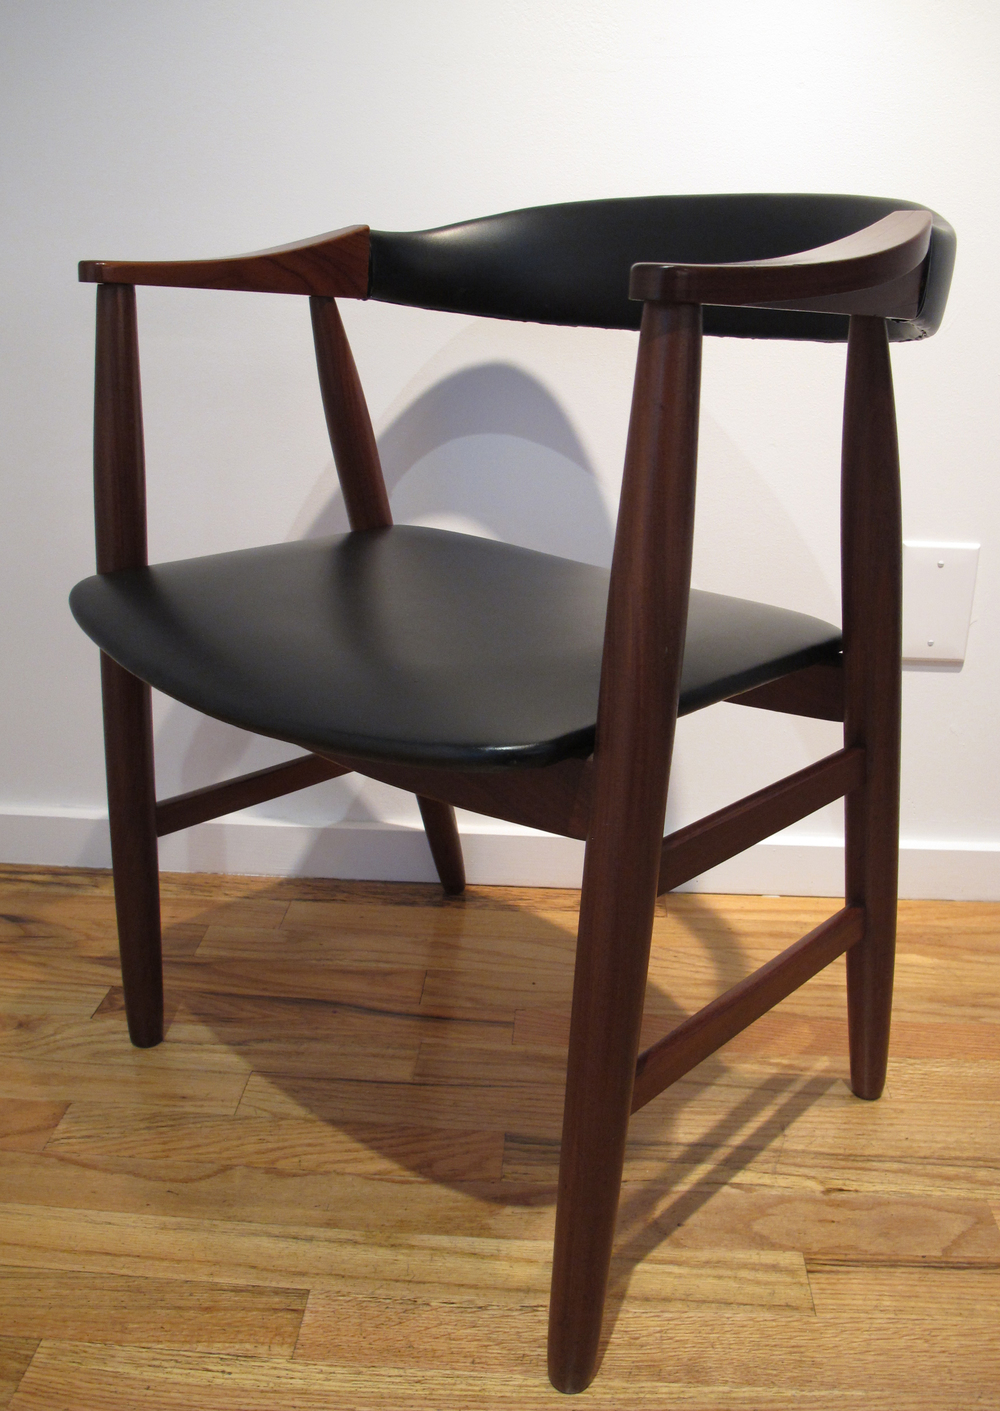 DANISH WALNUT ARMCHAIR AFTER ERIK KIRKEGAARD